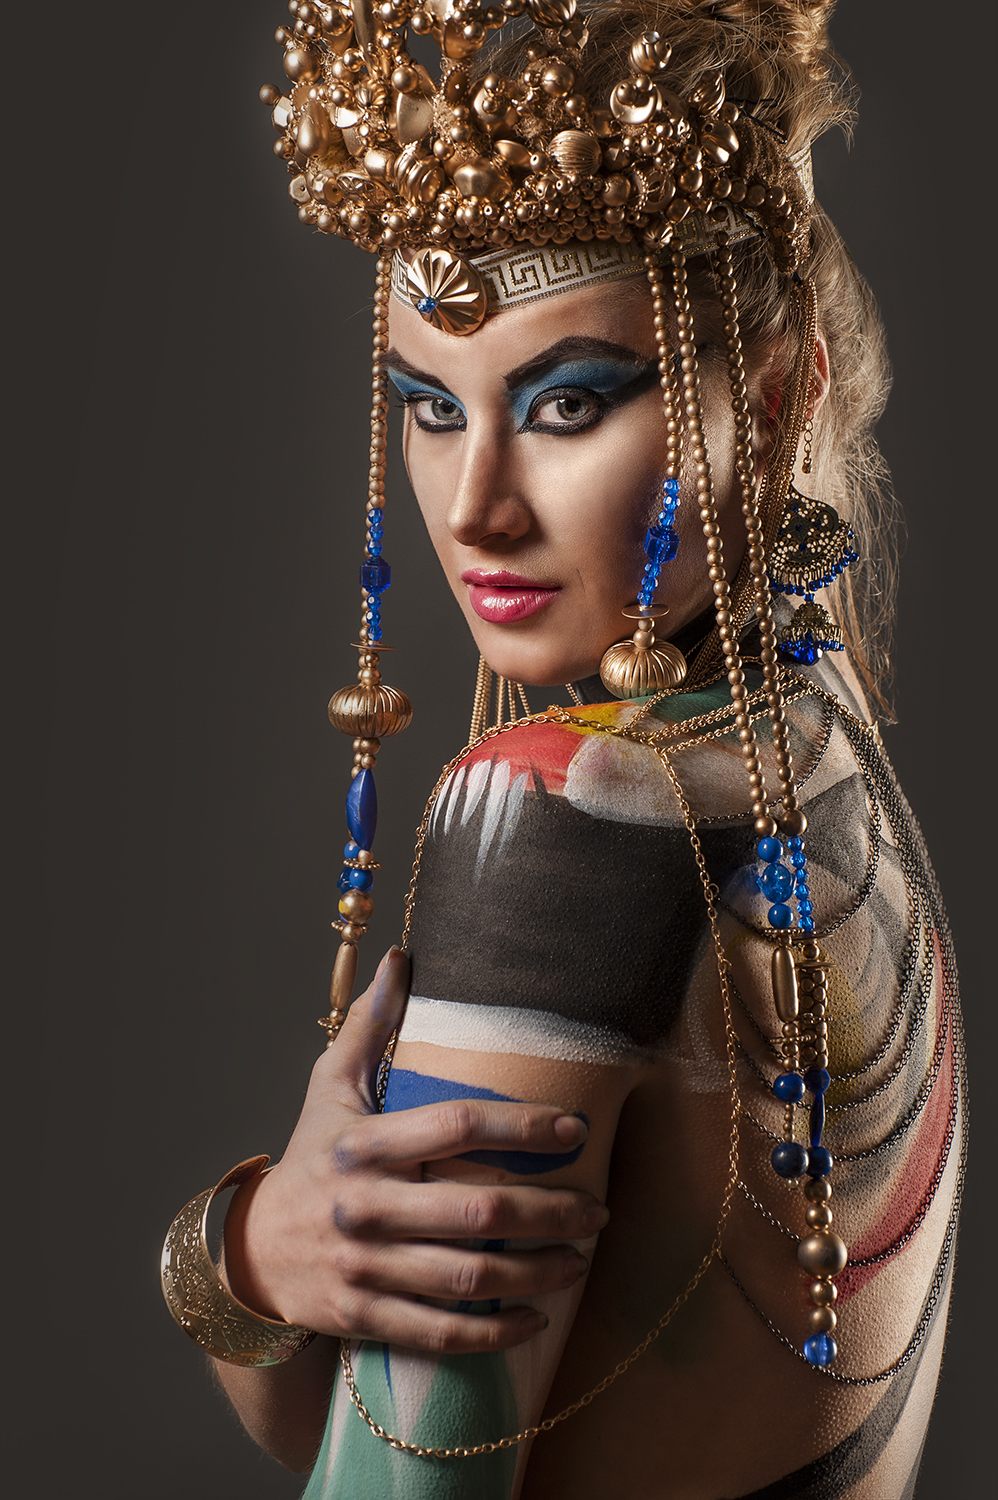 Toronto Hamilton Model Fashion Photographer - Marek Michalek - Egyptian Queen.jpg